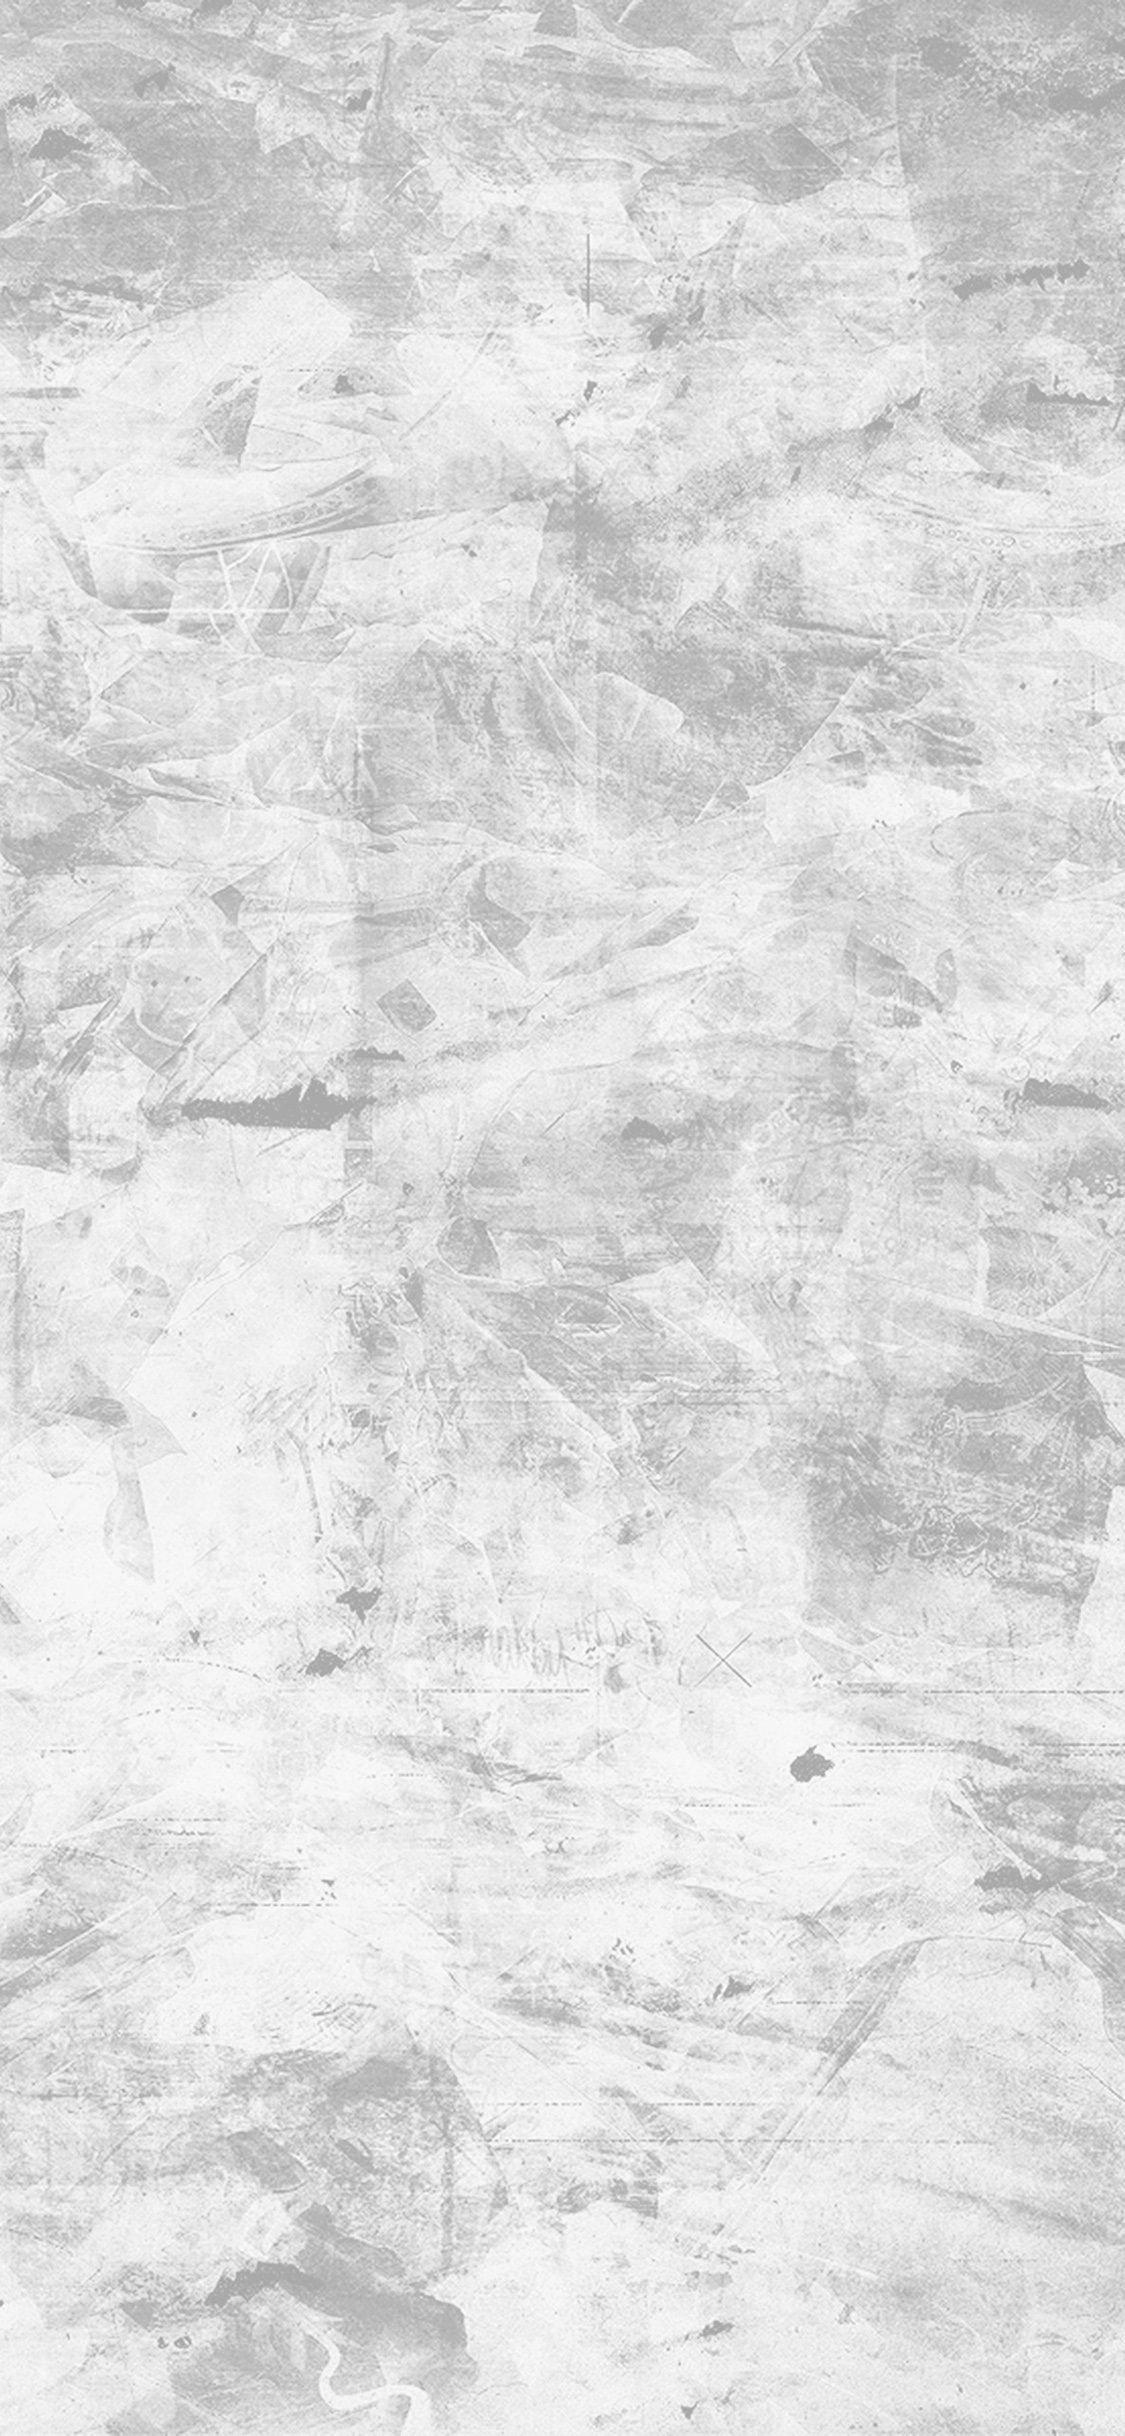 1125x2436 al32-wonder-lust-art-illust-grunge-abstract-white - Papers.co